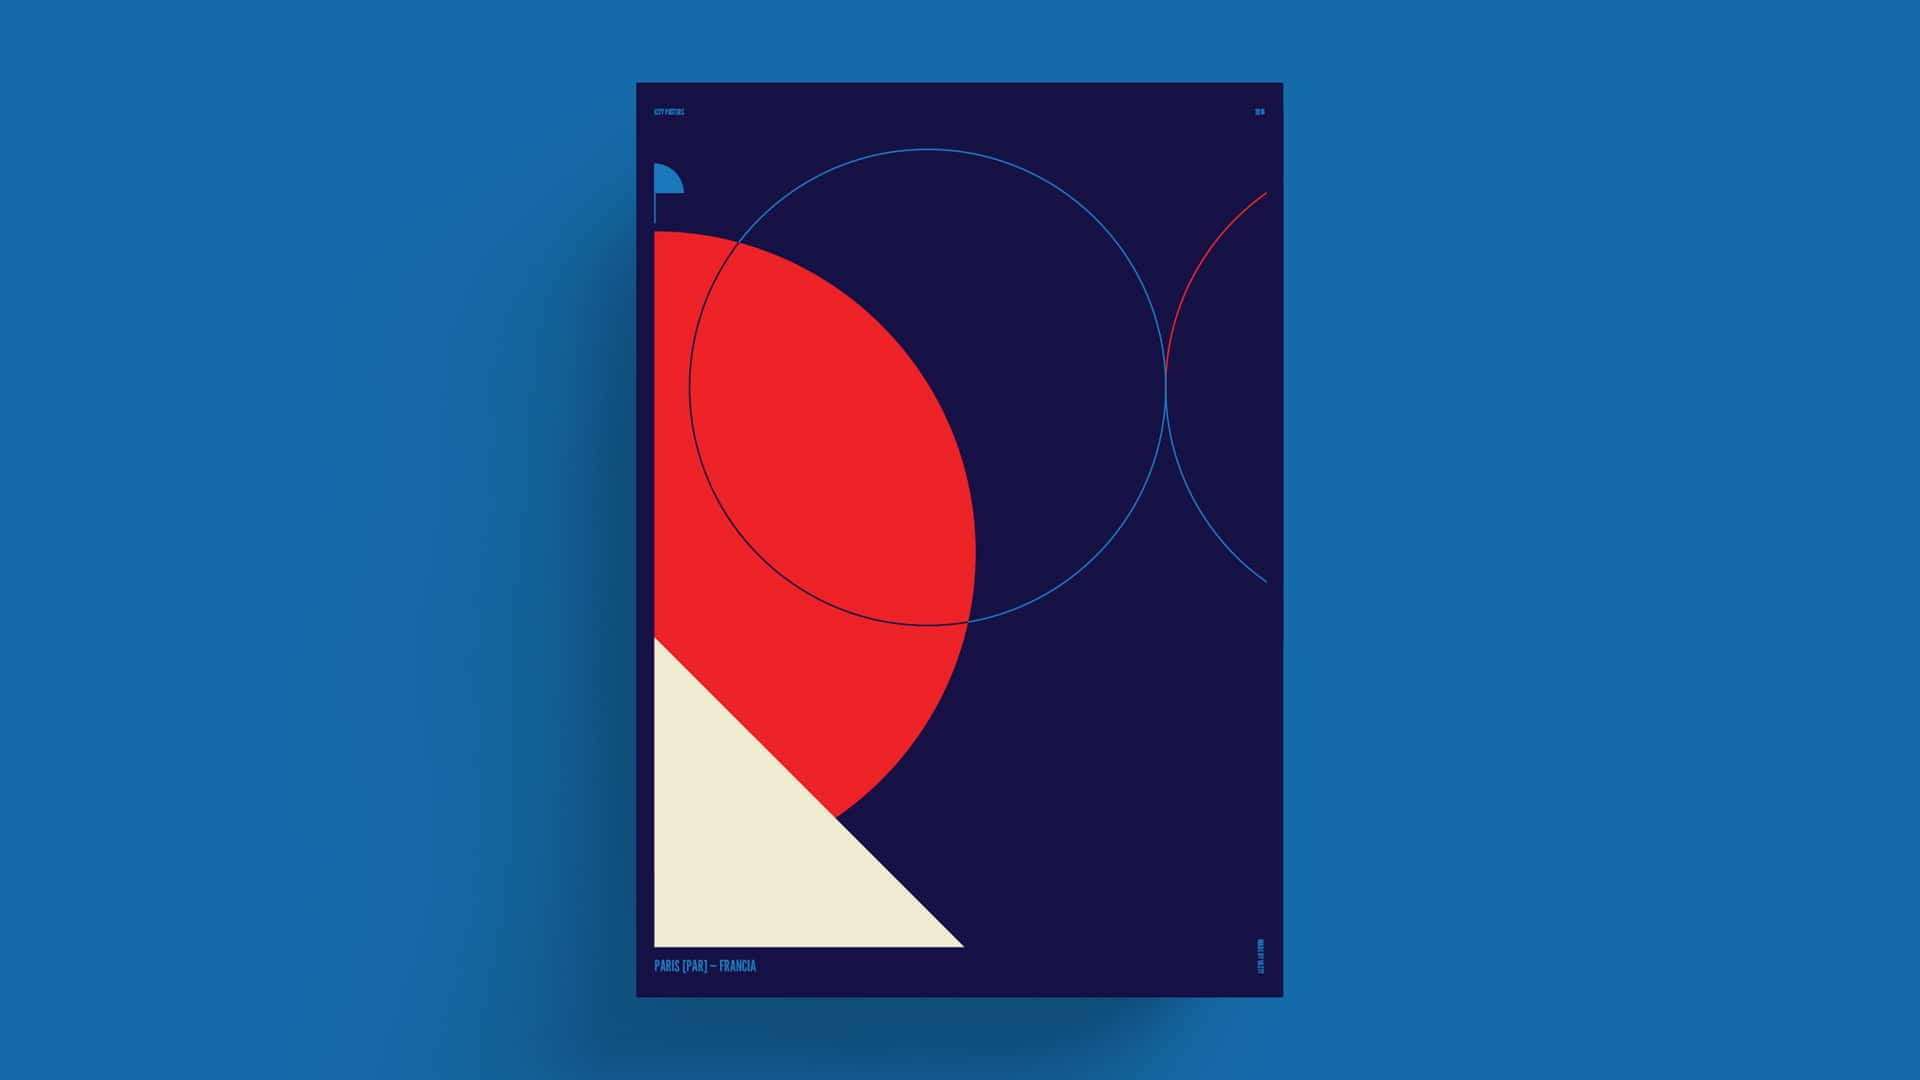 5 inspiring and creative poster designs - notes on design